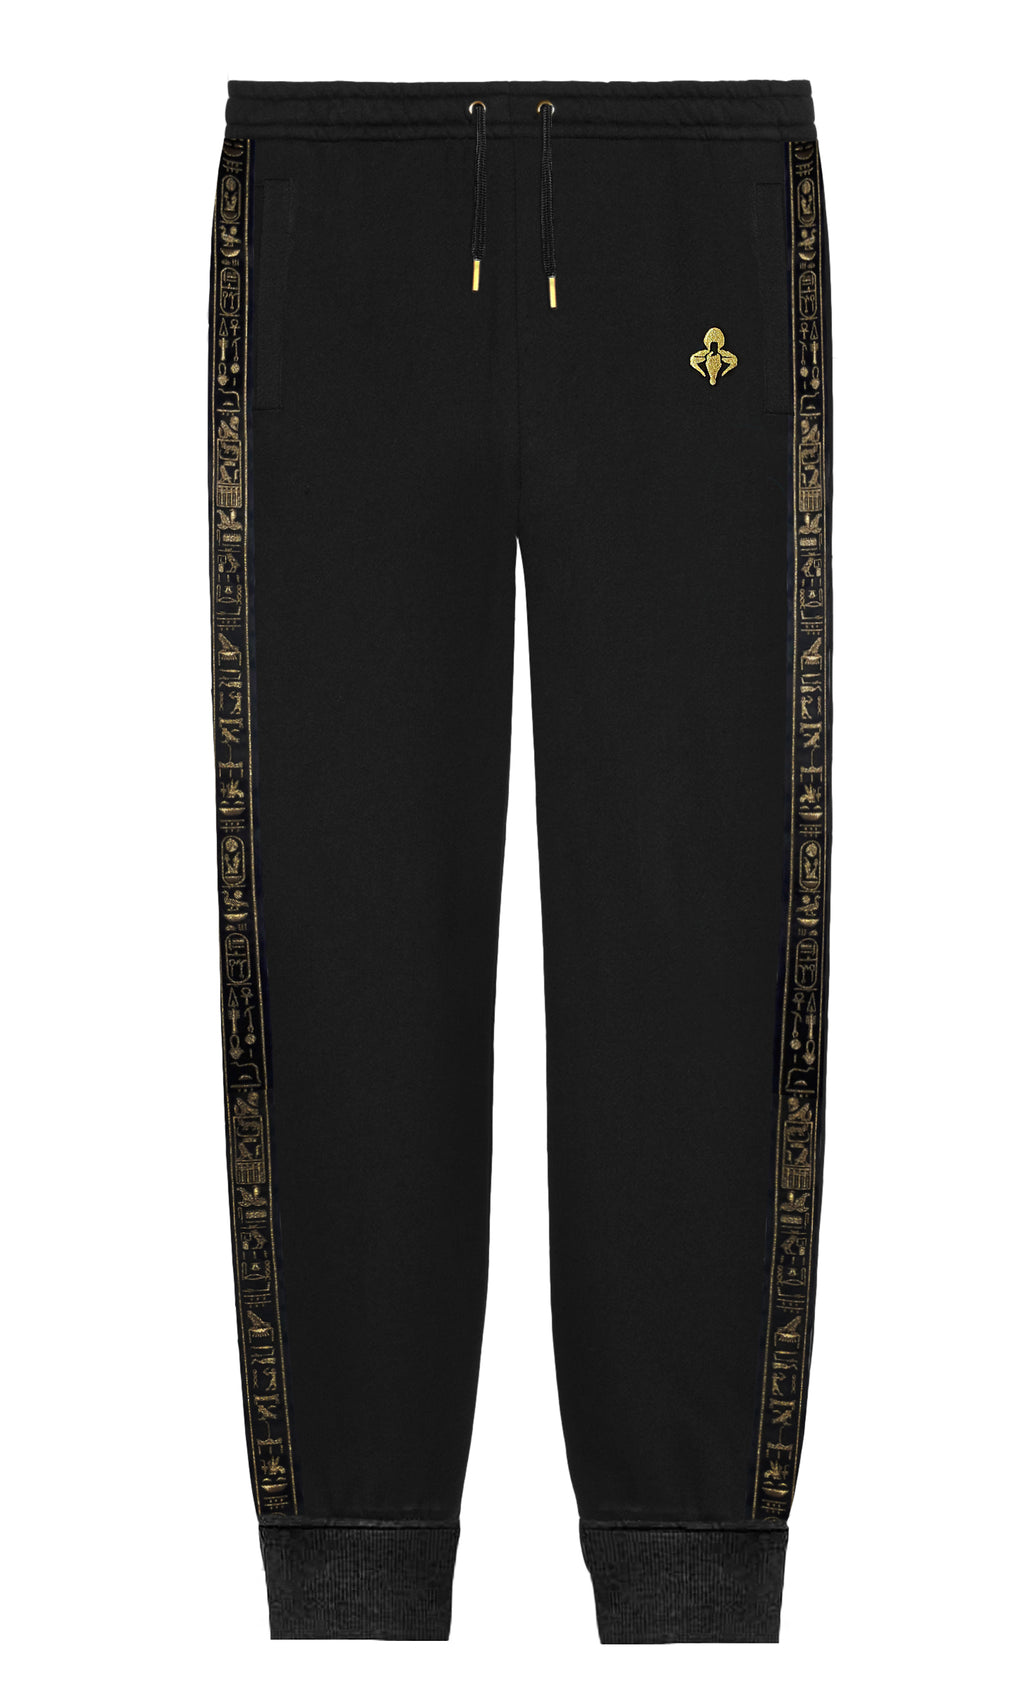 Black & Gold  Cerimonial Trim Sweatpants